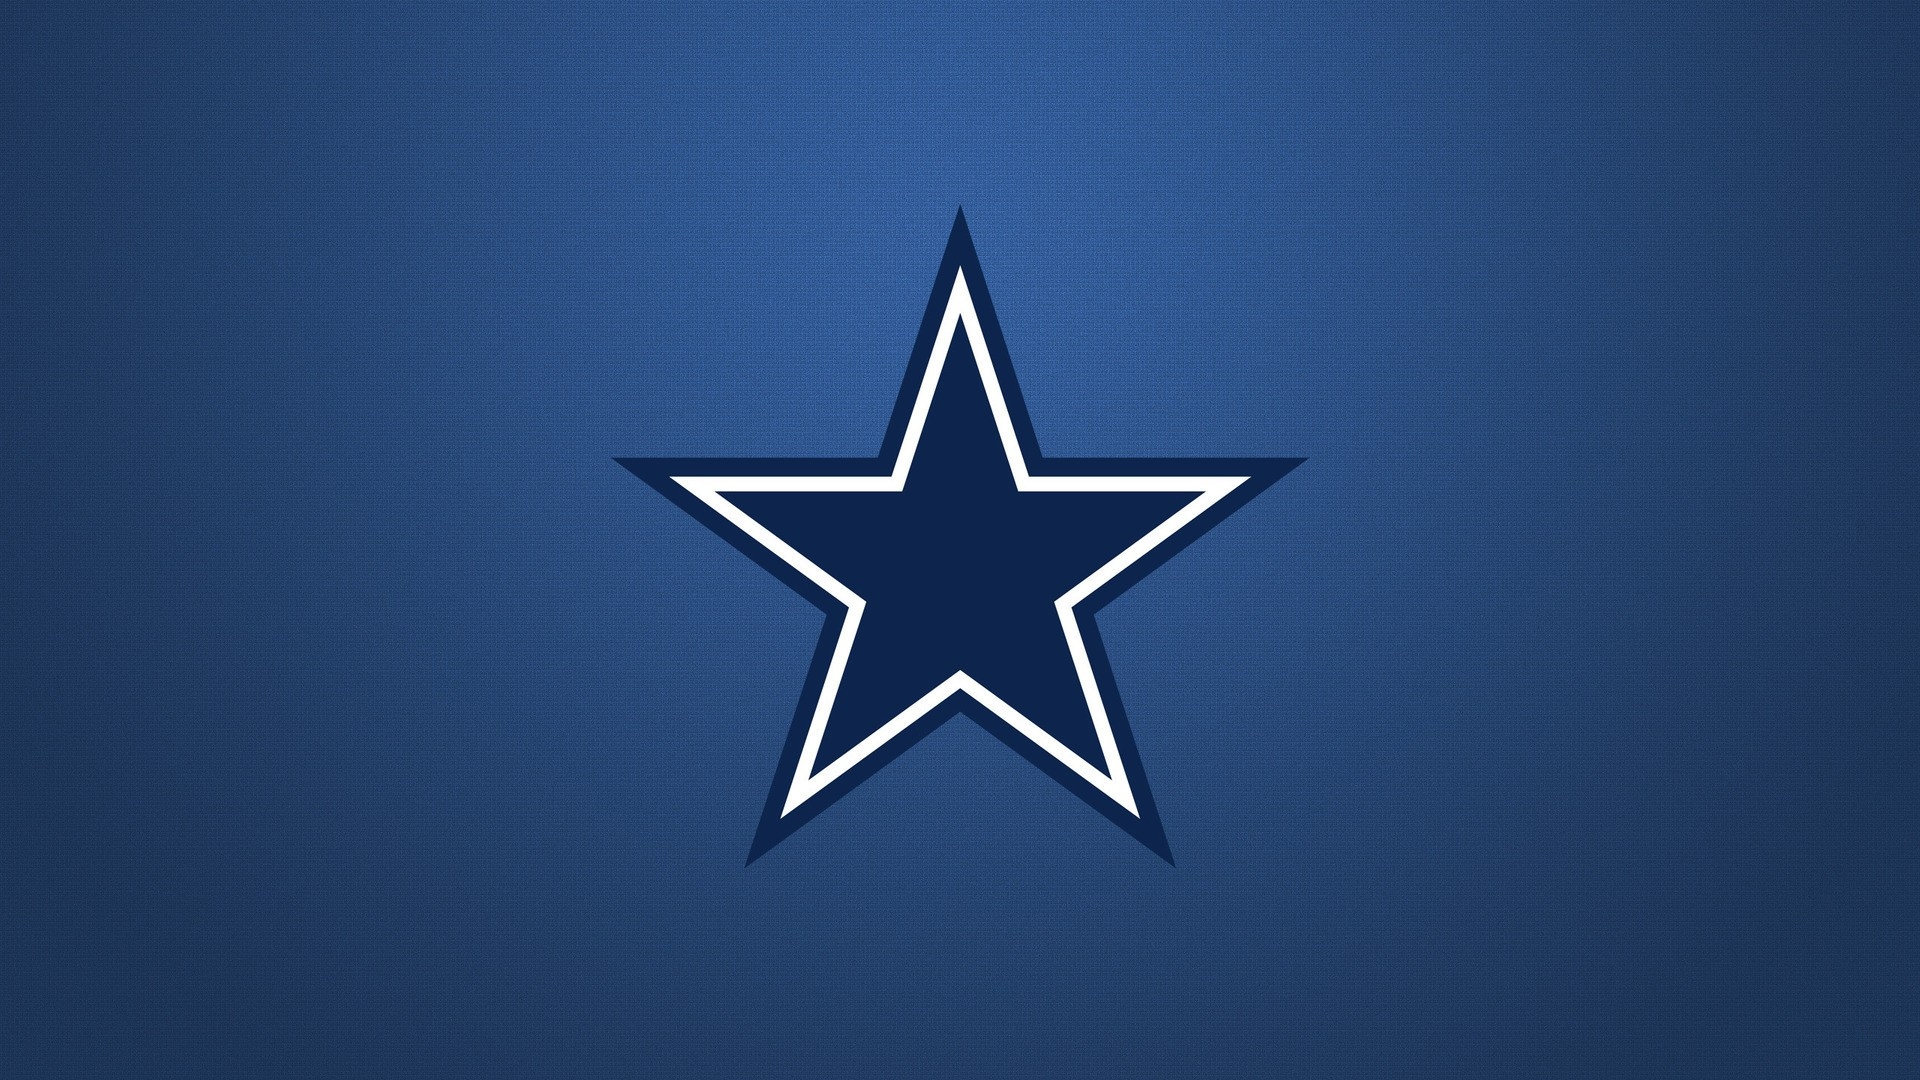 Great Wallpaper Football Cowboys - 8f08d60b7fdd266630af4a208ea9ba52  Photograph_684232 .jpg